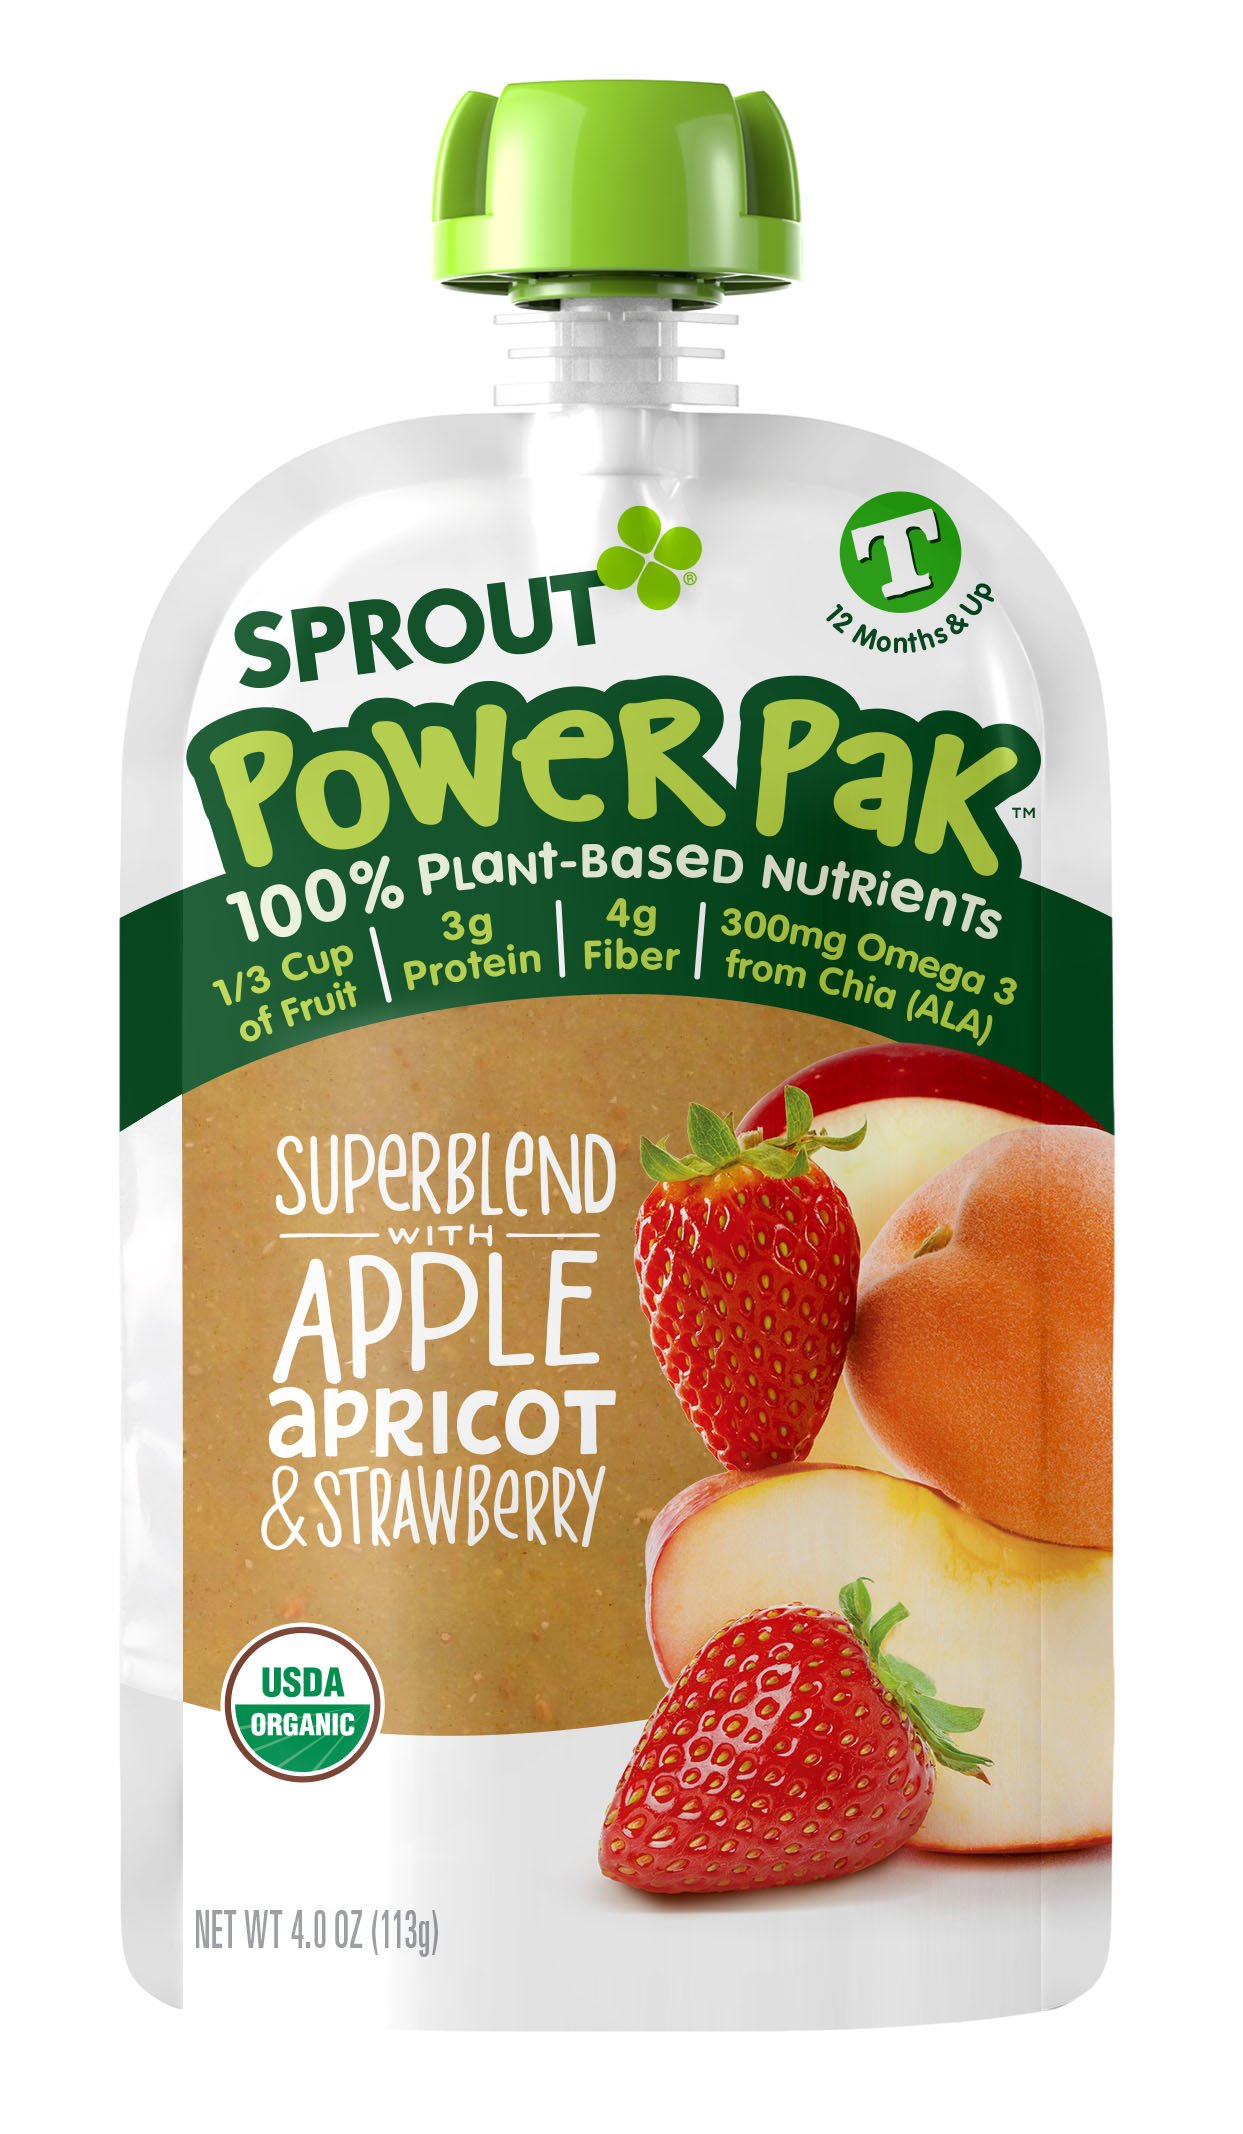 Sprout Organic Baby Food Pouches Sprout Organic Power Pak Toddler Food Pouch, Superblend with Apple Apricot & Strawberry, 4 Ounce (Pack of 6); USDA Organic, Non-GMO, 3 Grams of Protein, Plant Powered